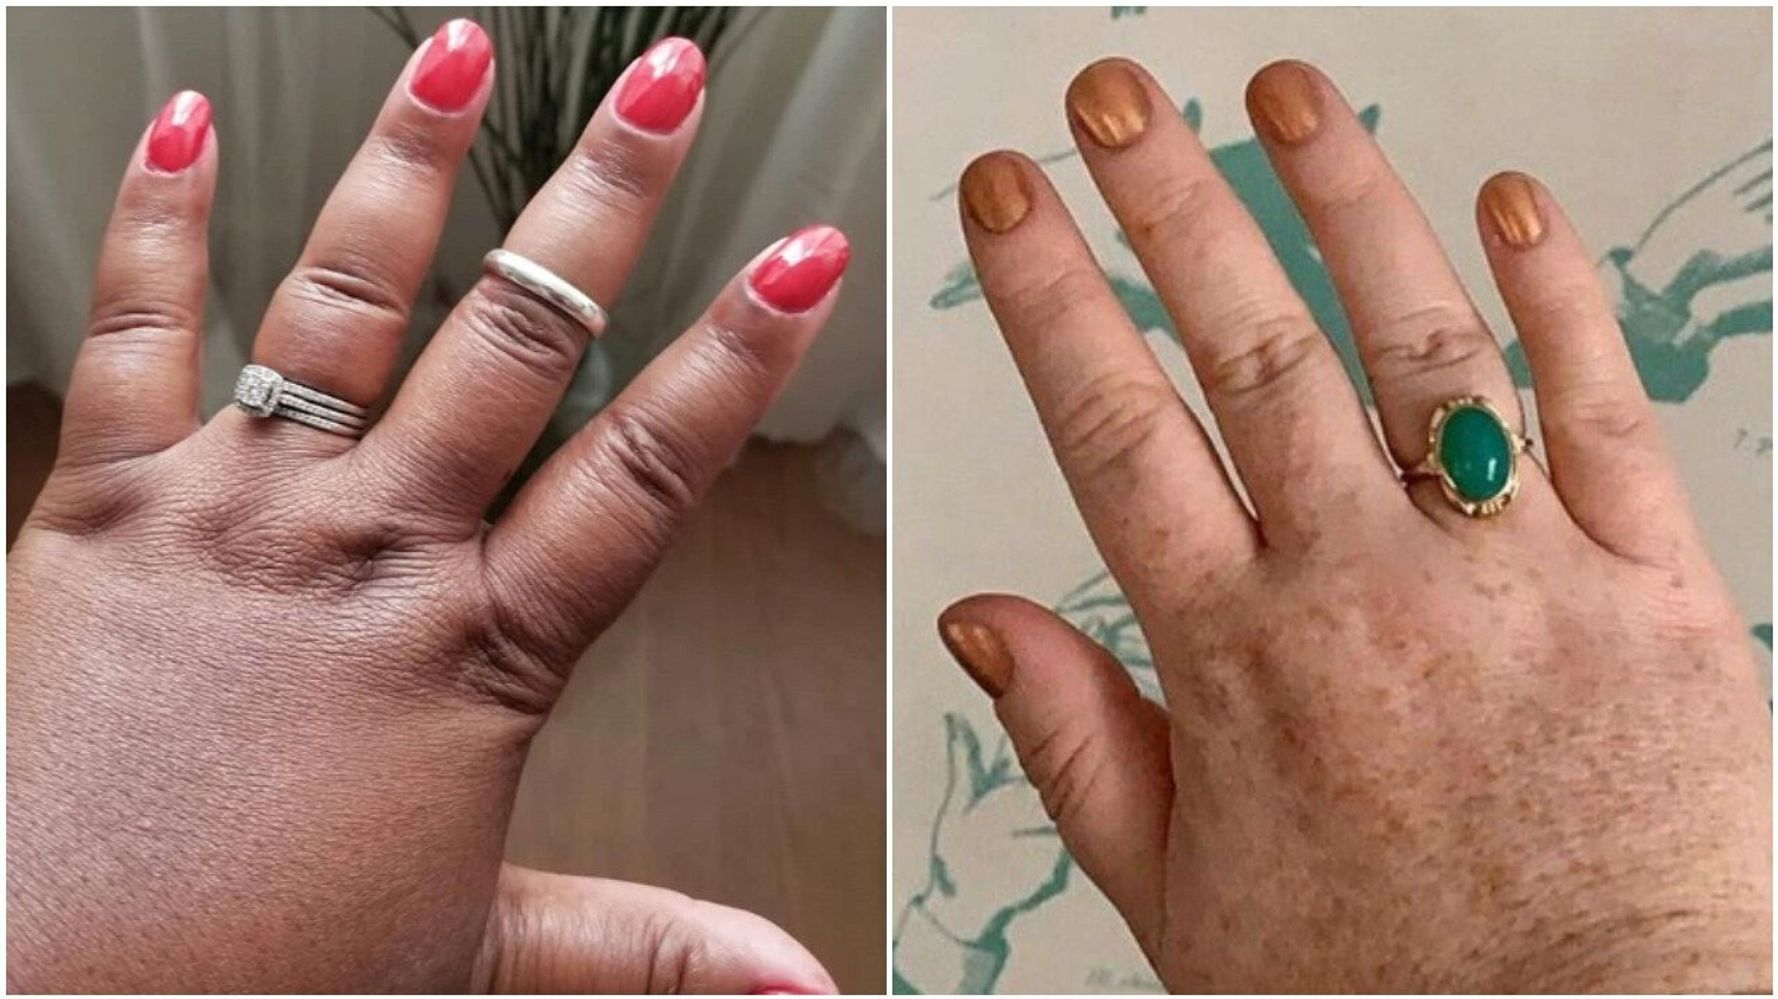 You Never See Chubby Fingers Selling Rings – This Campaign Hopes To Change That